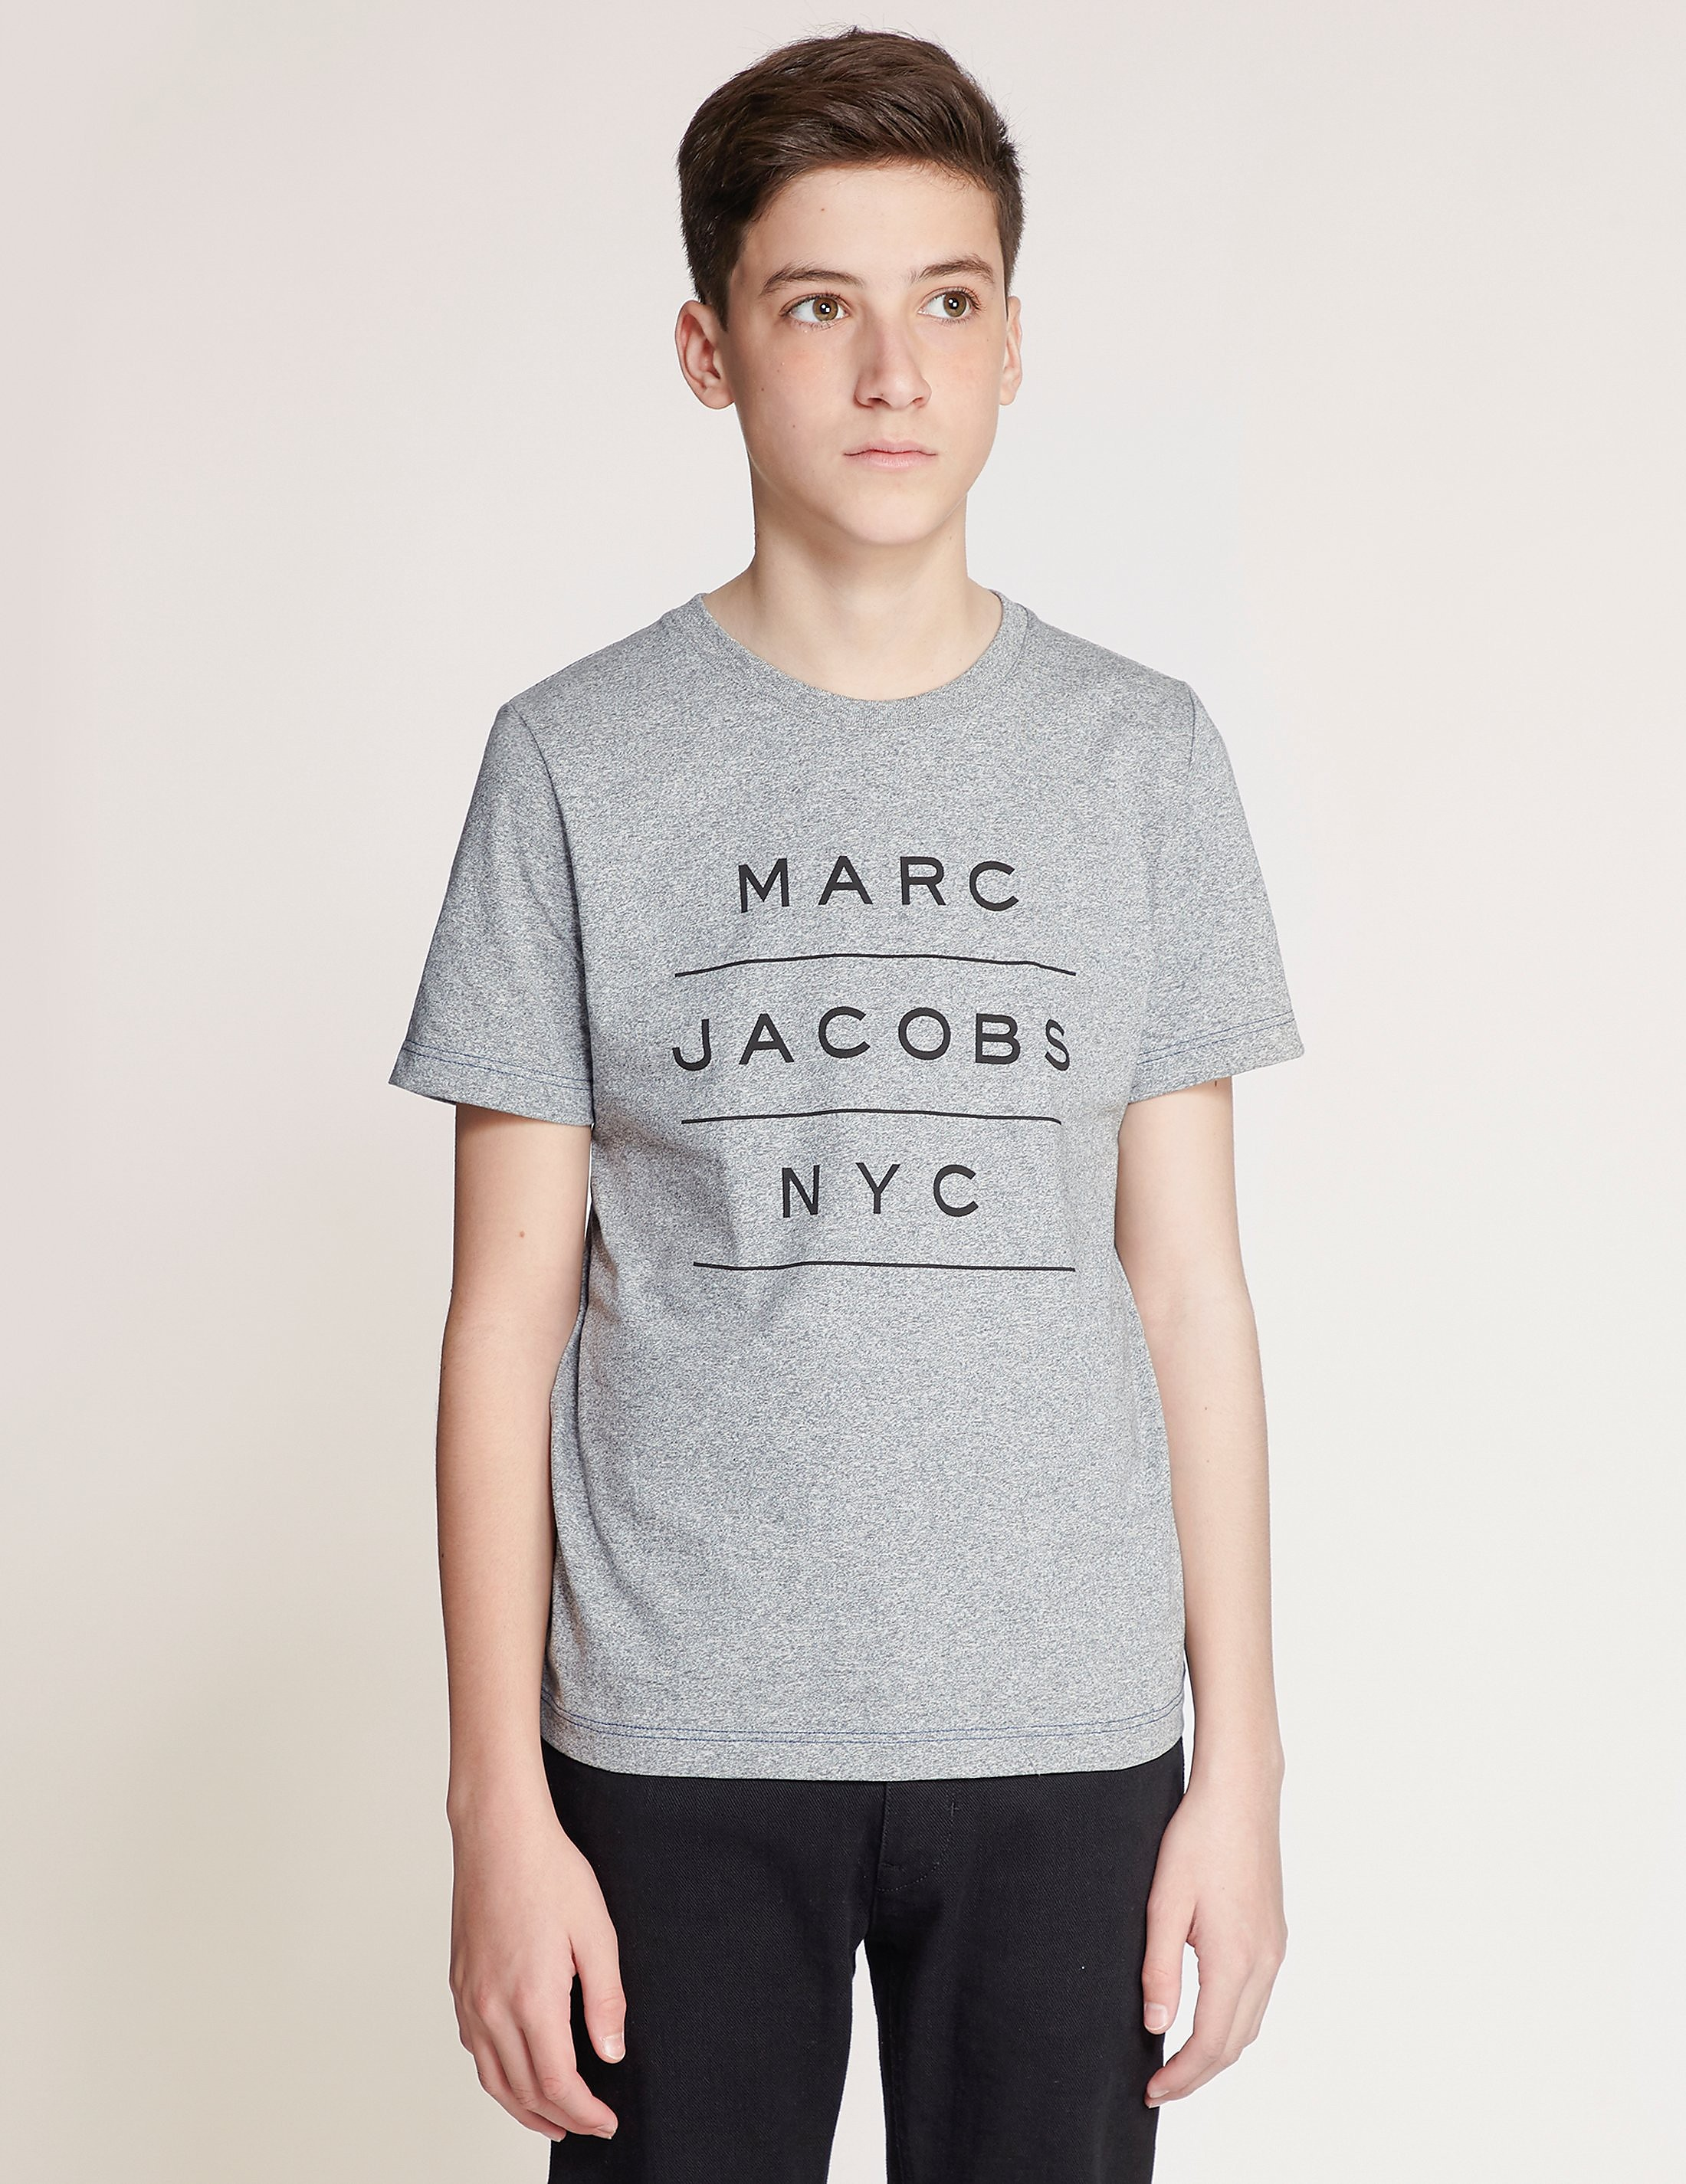 Little Marc Jacobs NYC T-Shirt